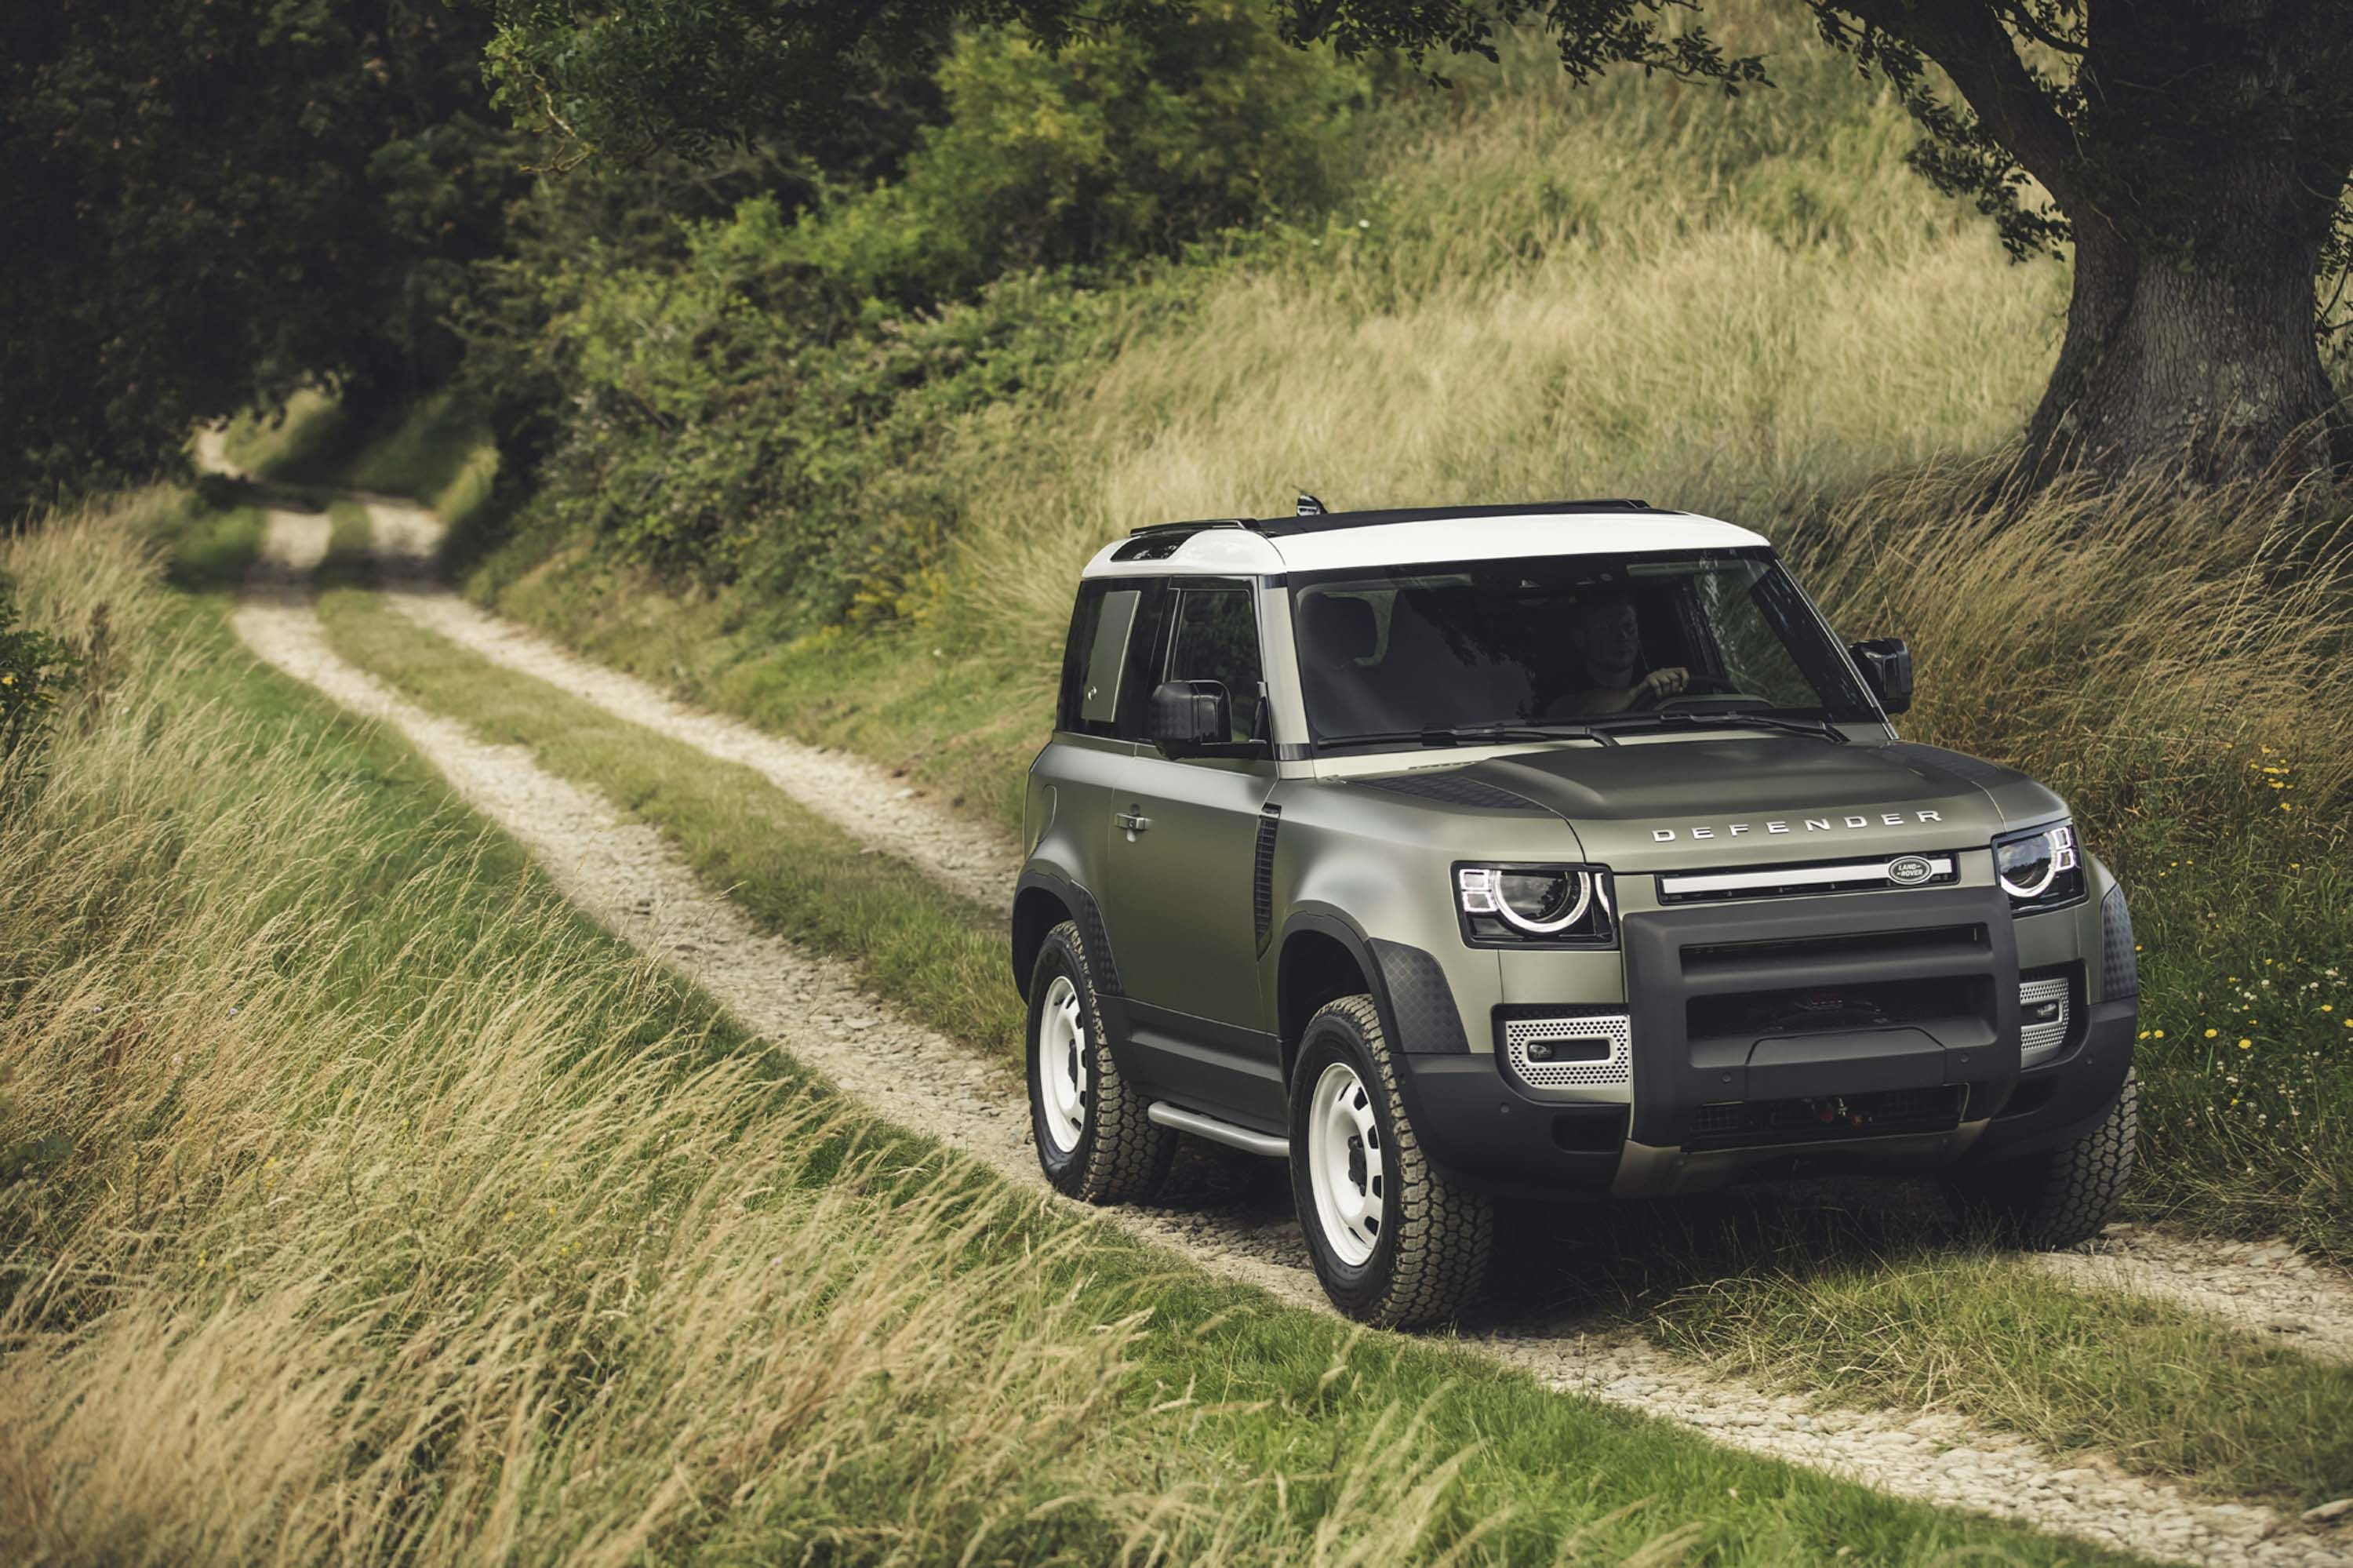 2020 Land Rover Defender Quirks And Features Land Rover Defender